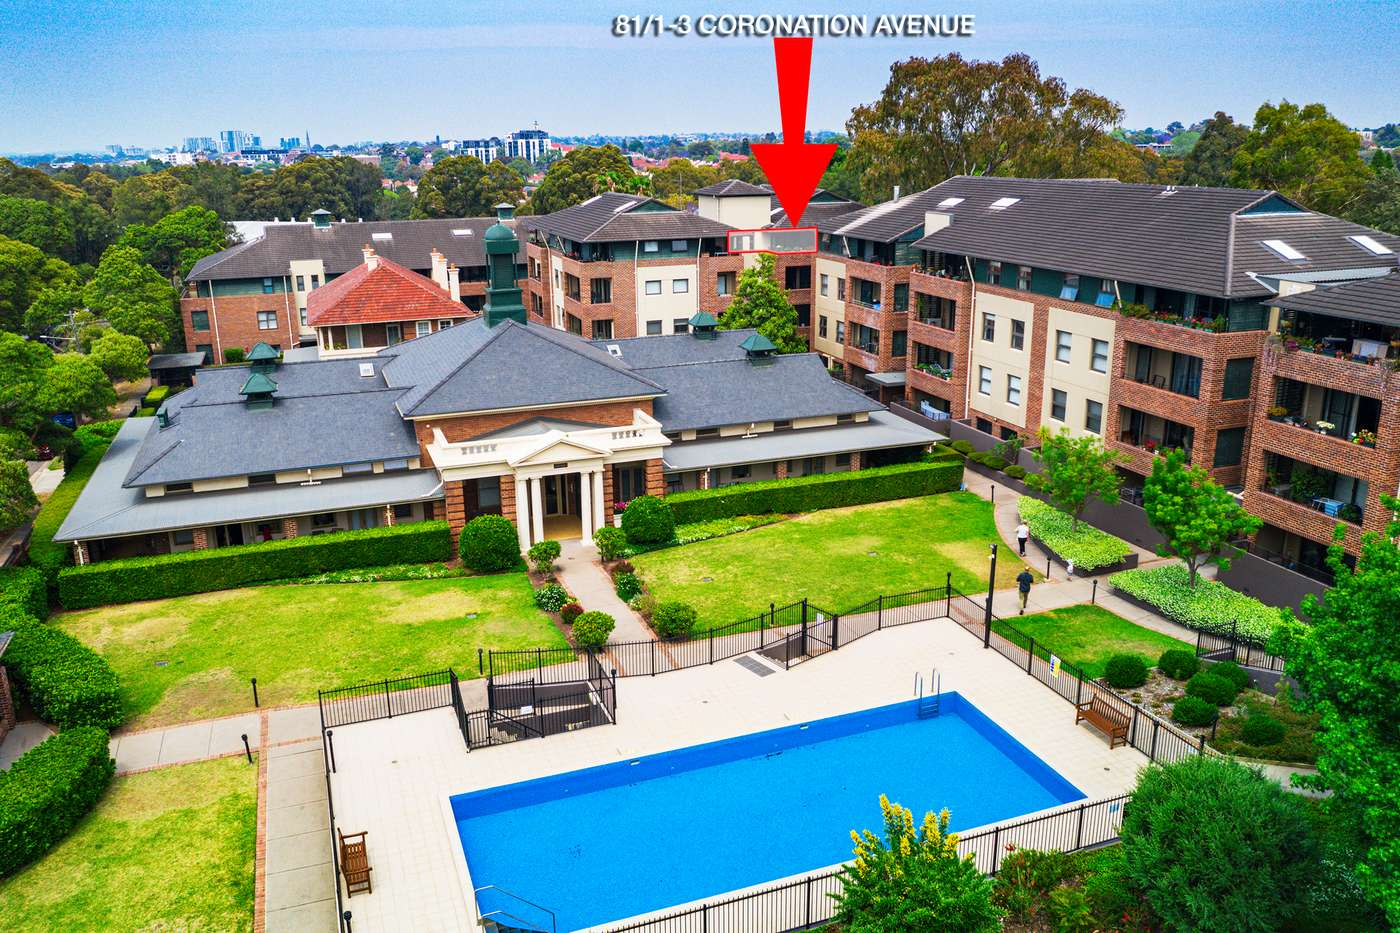 Main view of Homely apartment listing, 81/1-3 Coronation Avenue, Petersham, NSW 2049